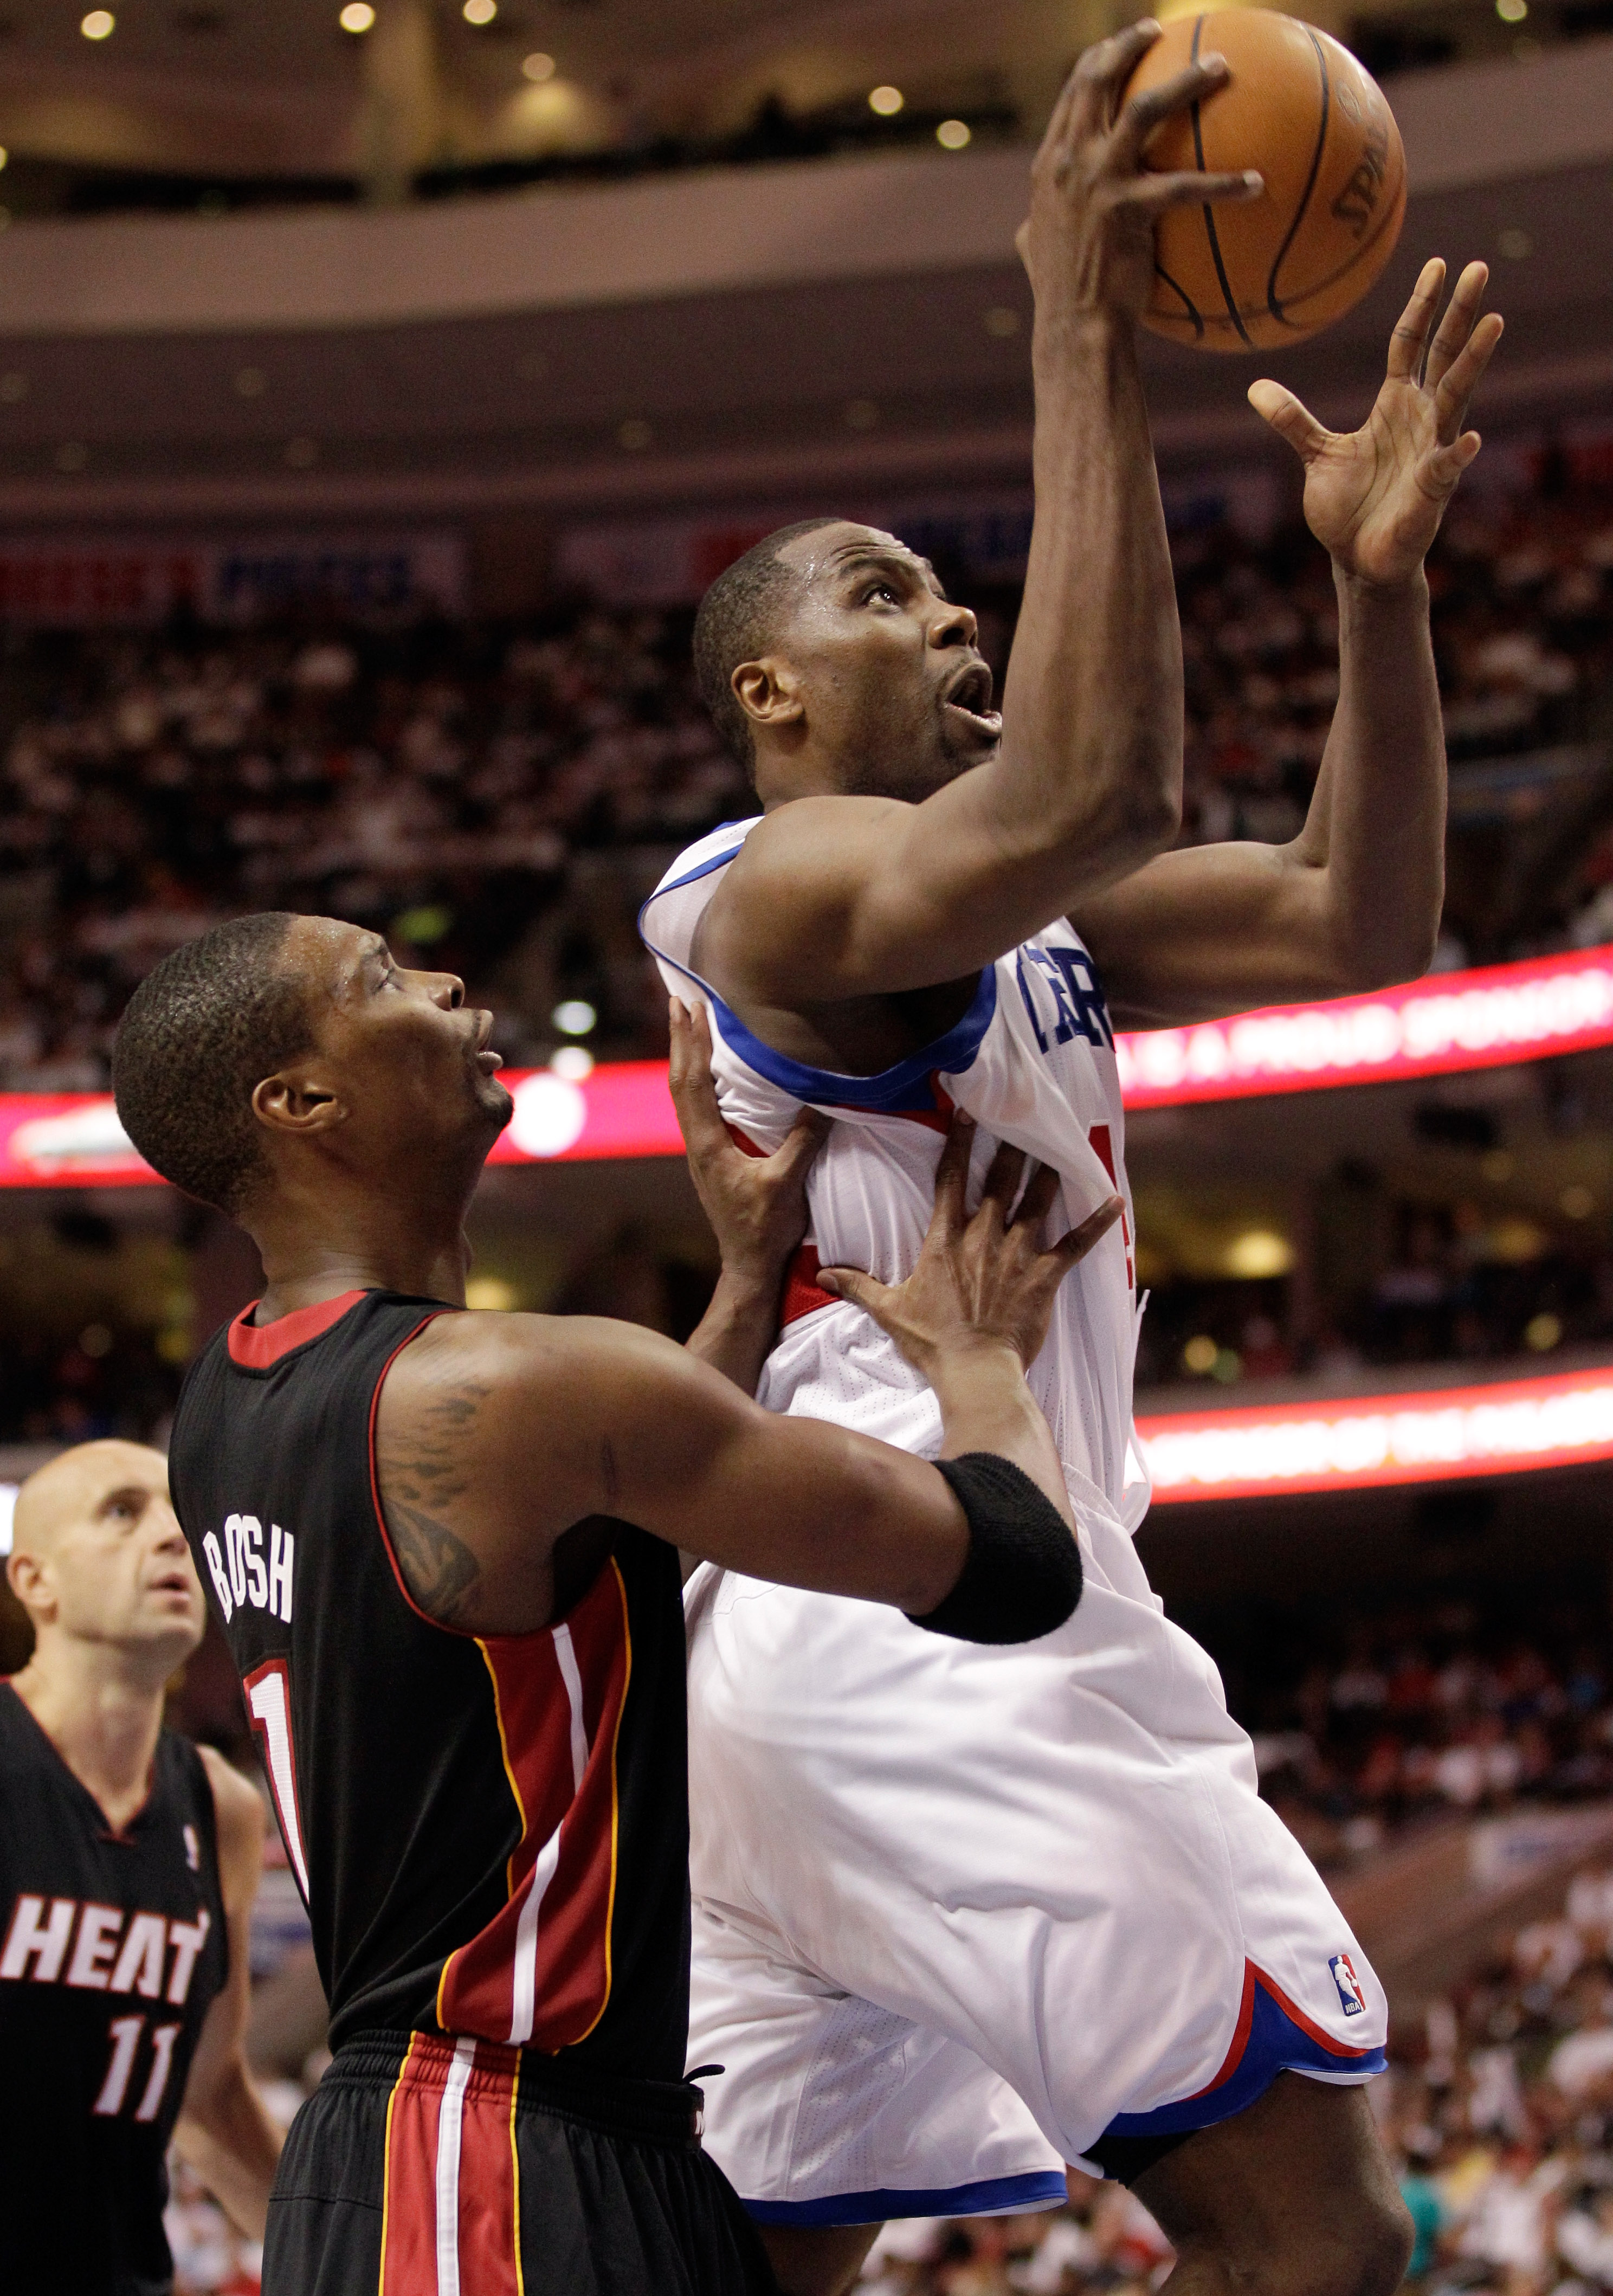 PHILADELPHIA, PA - APRIL 21: Elton Brand #42 of the Philadelphia 76ers (R) puts the ball up in front of Chris Bosh #1 of the Miami Heat during the second half of game three of the Eastern Conference Quarterfinals at Wells Fargo Center on April 21, 2011 in